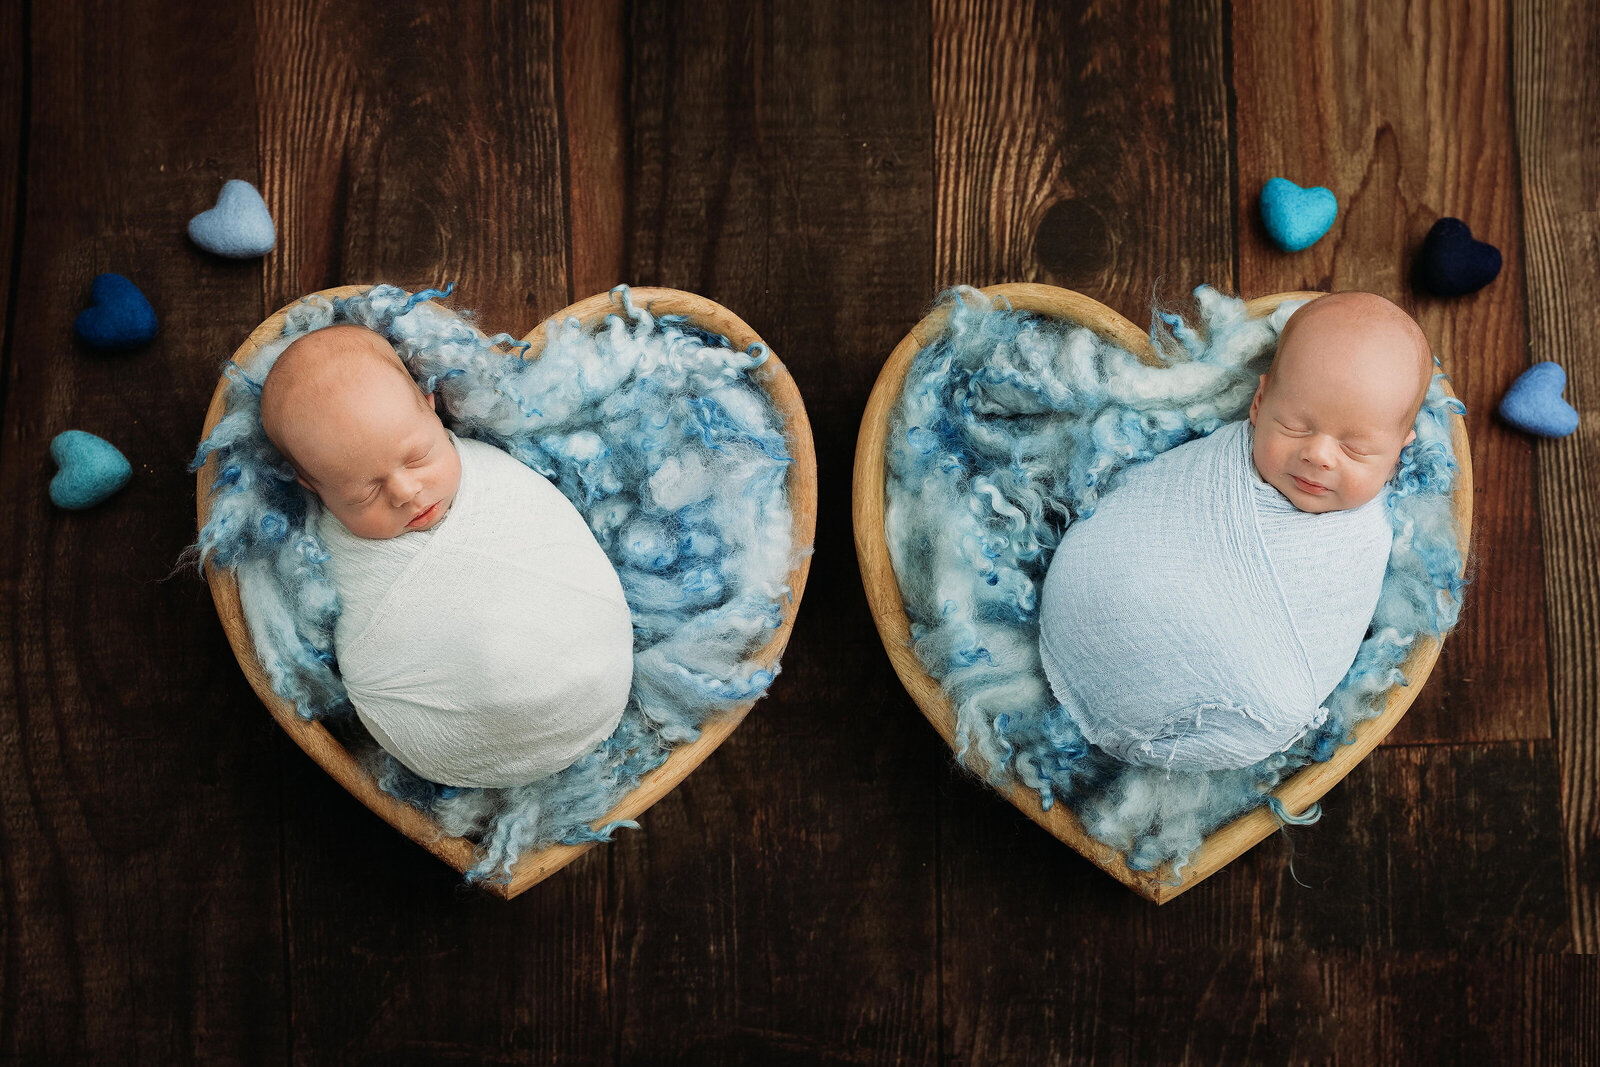 In-studio portrait of twin newborn babies posed in hearts on wood floor